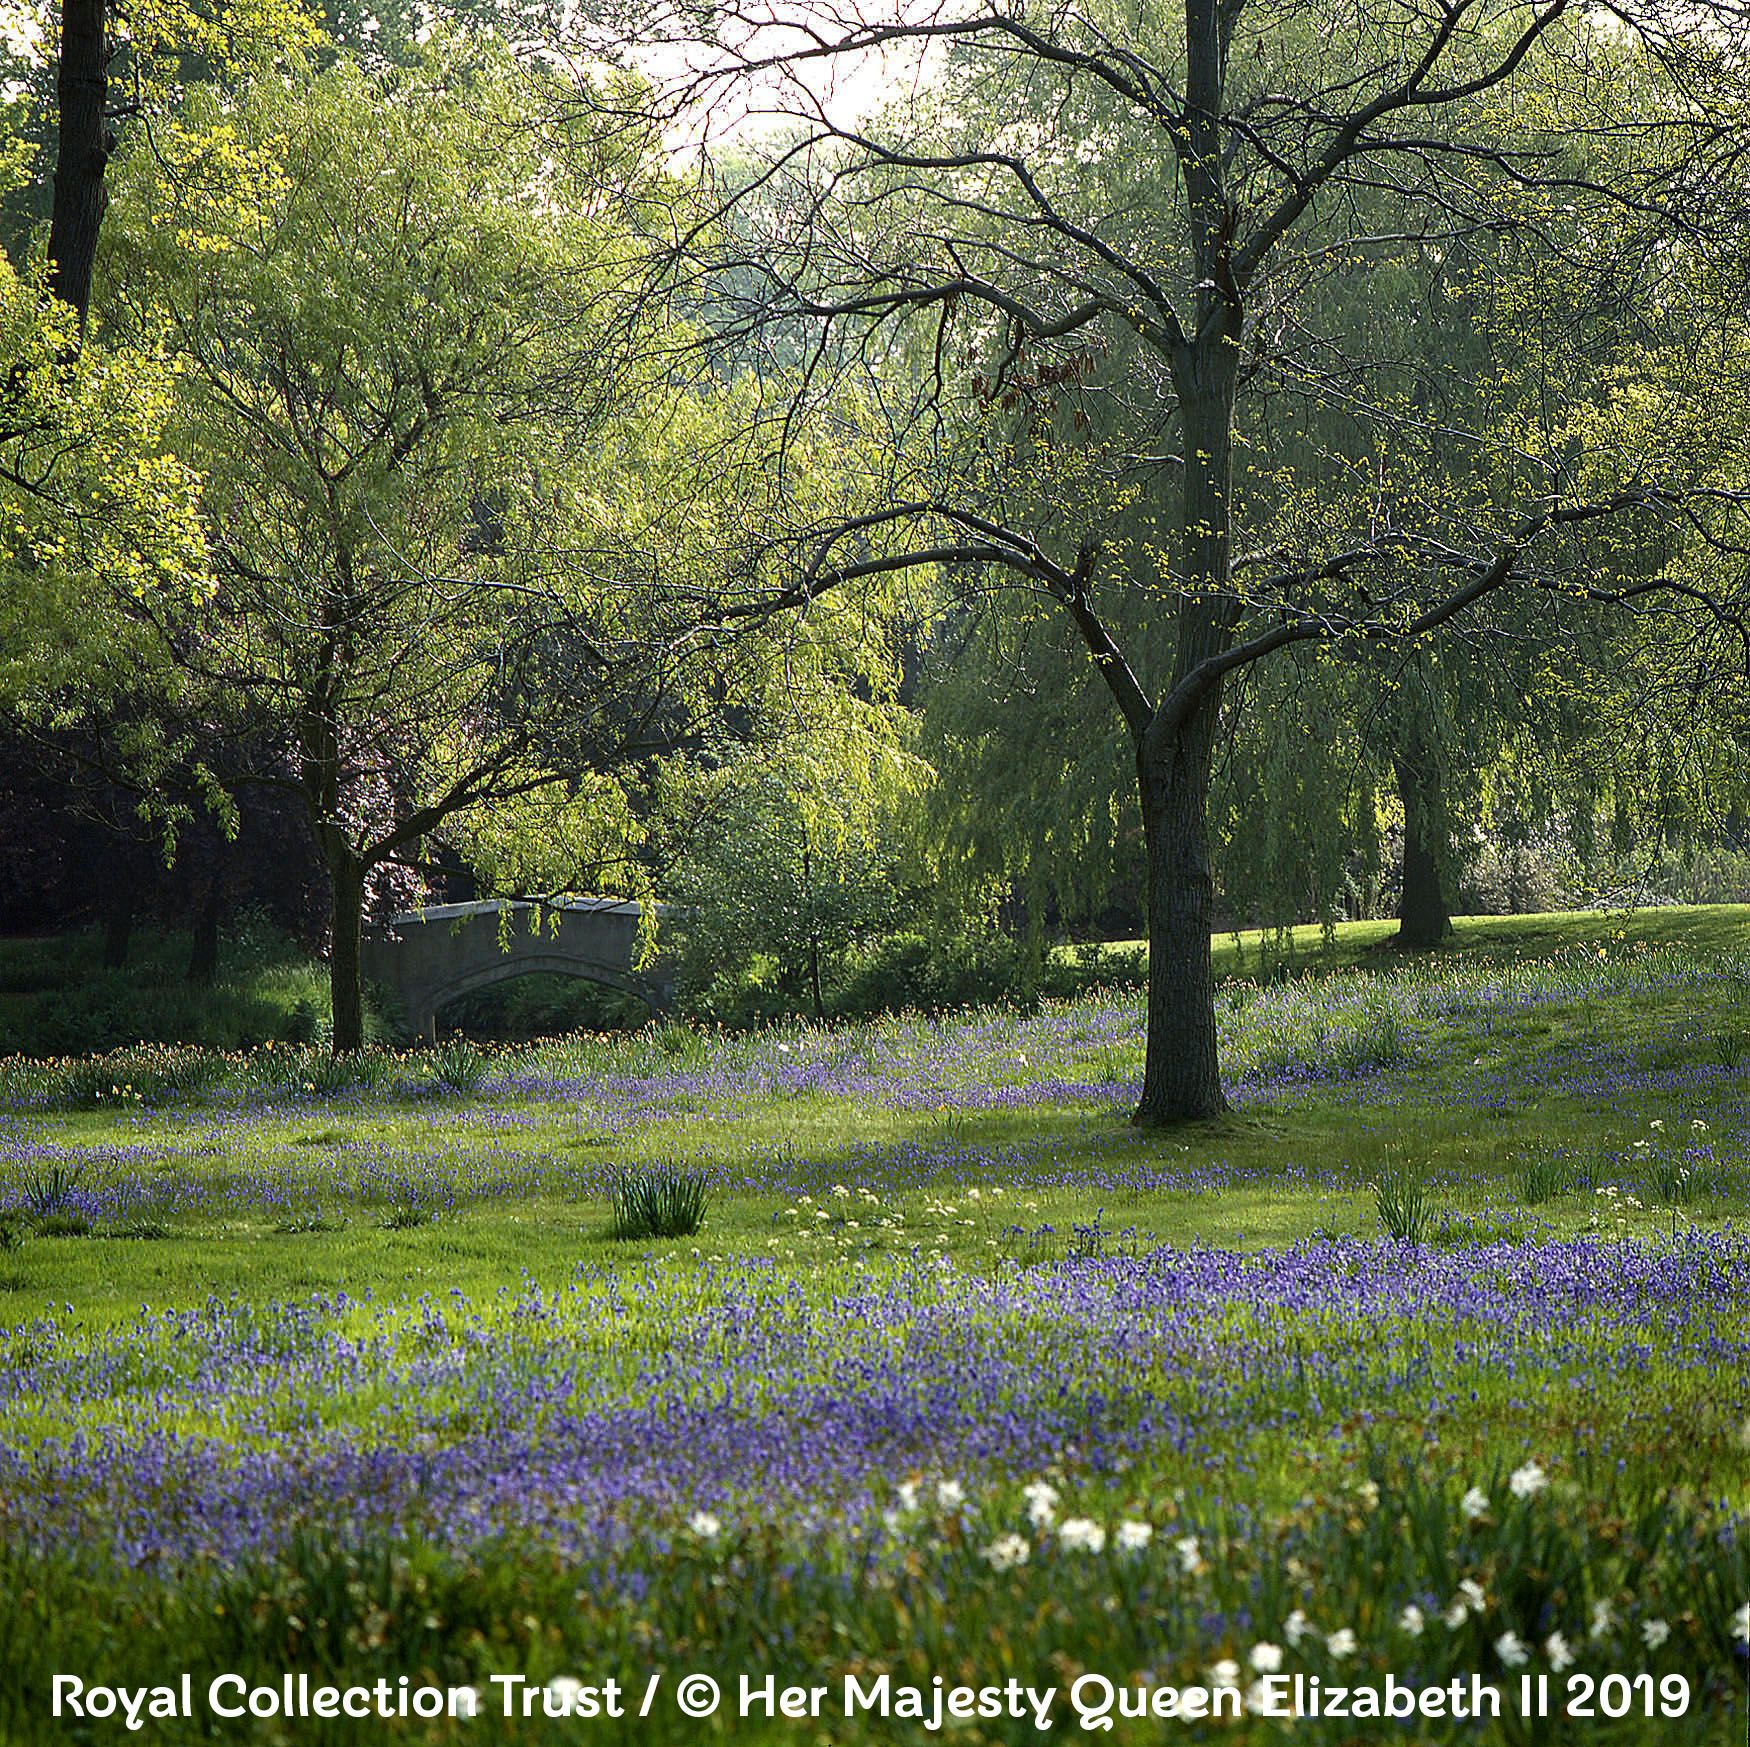 Frogmore House and Garden: Charity Garden Open Day